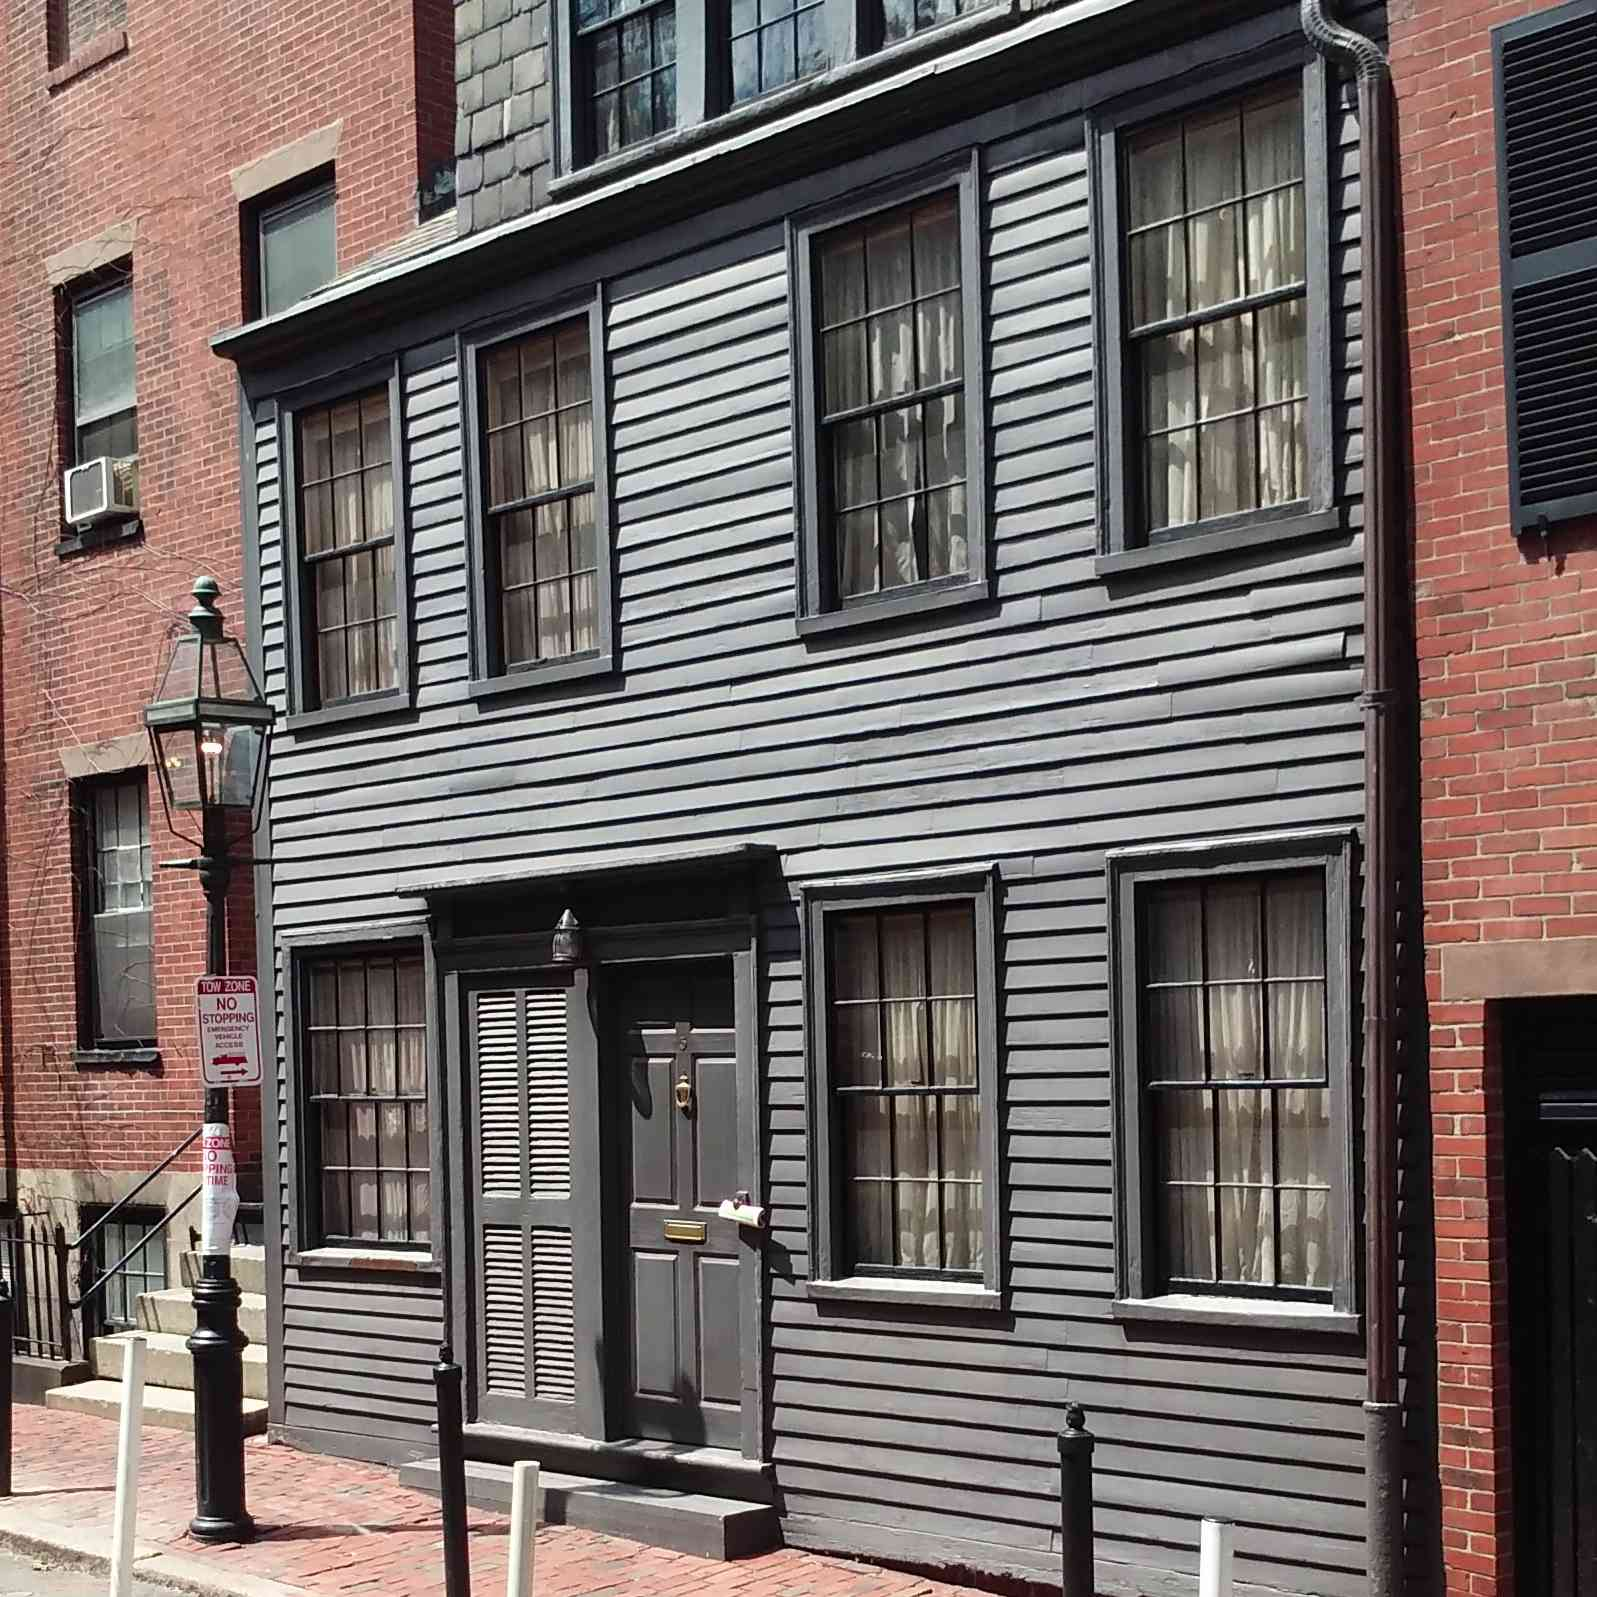 George Middleton House (private residence not open for tours) in Boston on the Black Heritage Trail